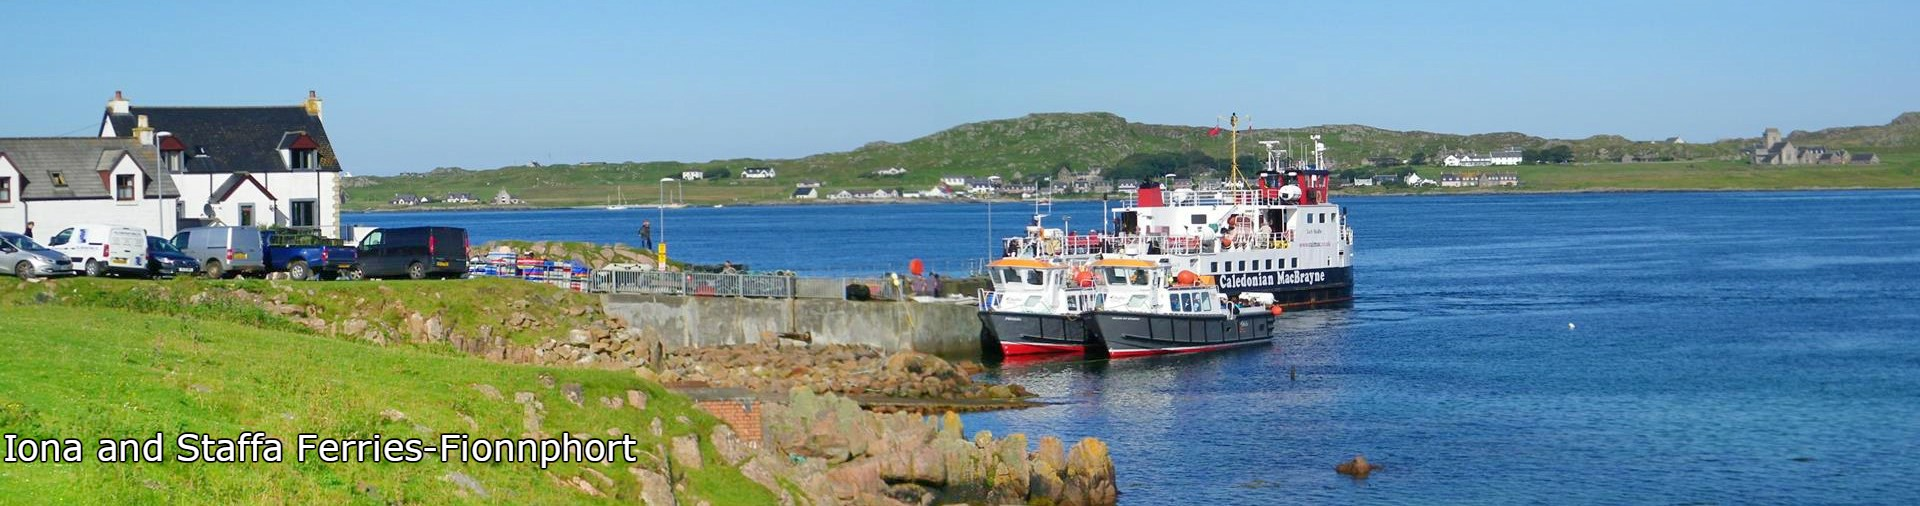 Fionnphort Ferry,Fionnphort, Isle of Mull, Isle of Iona